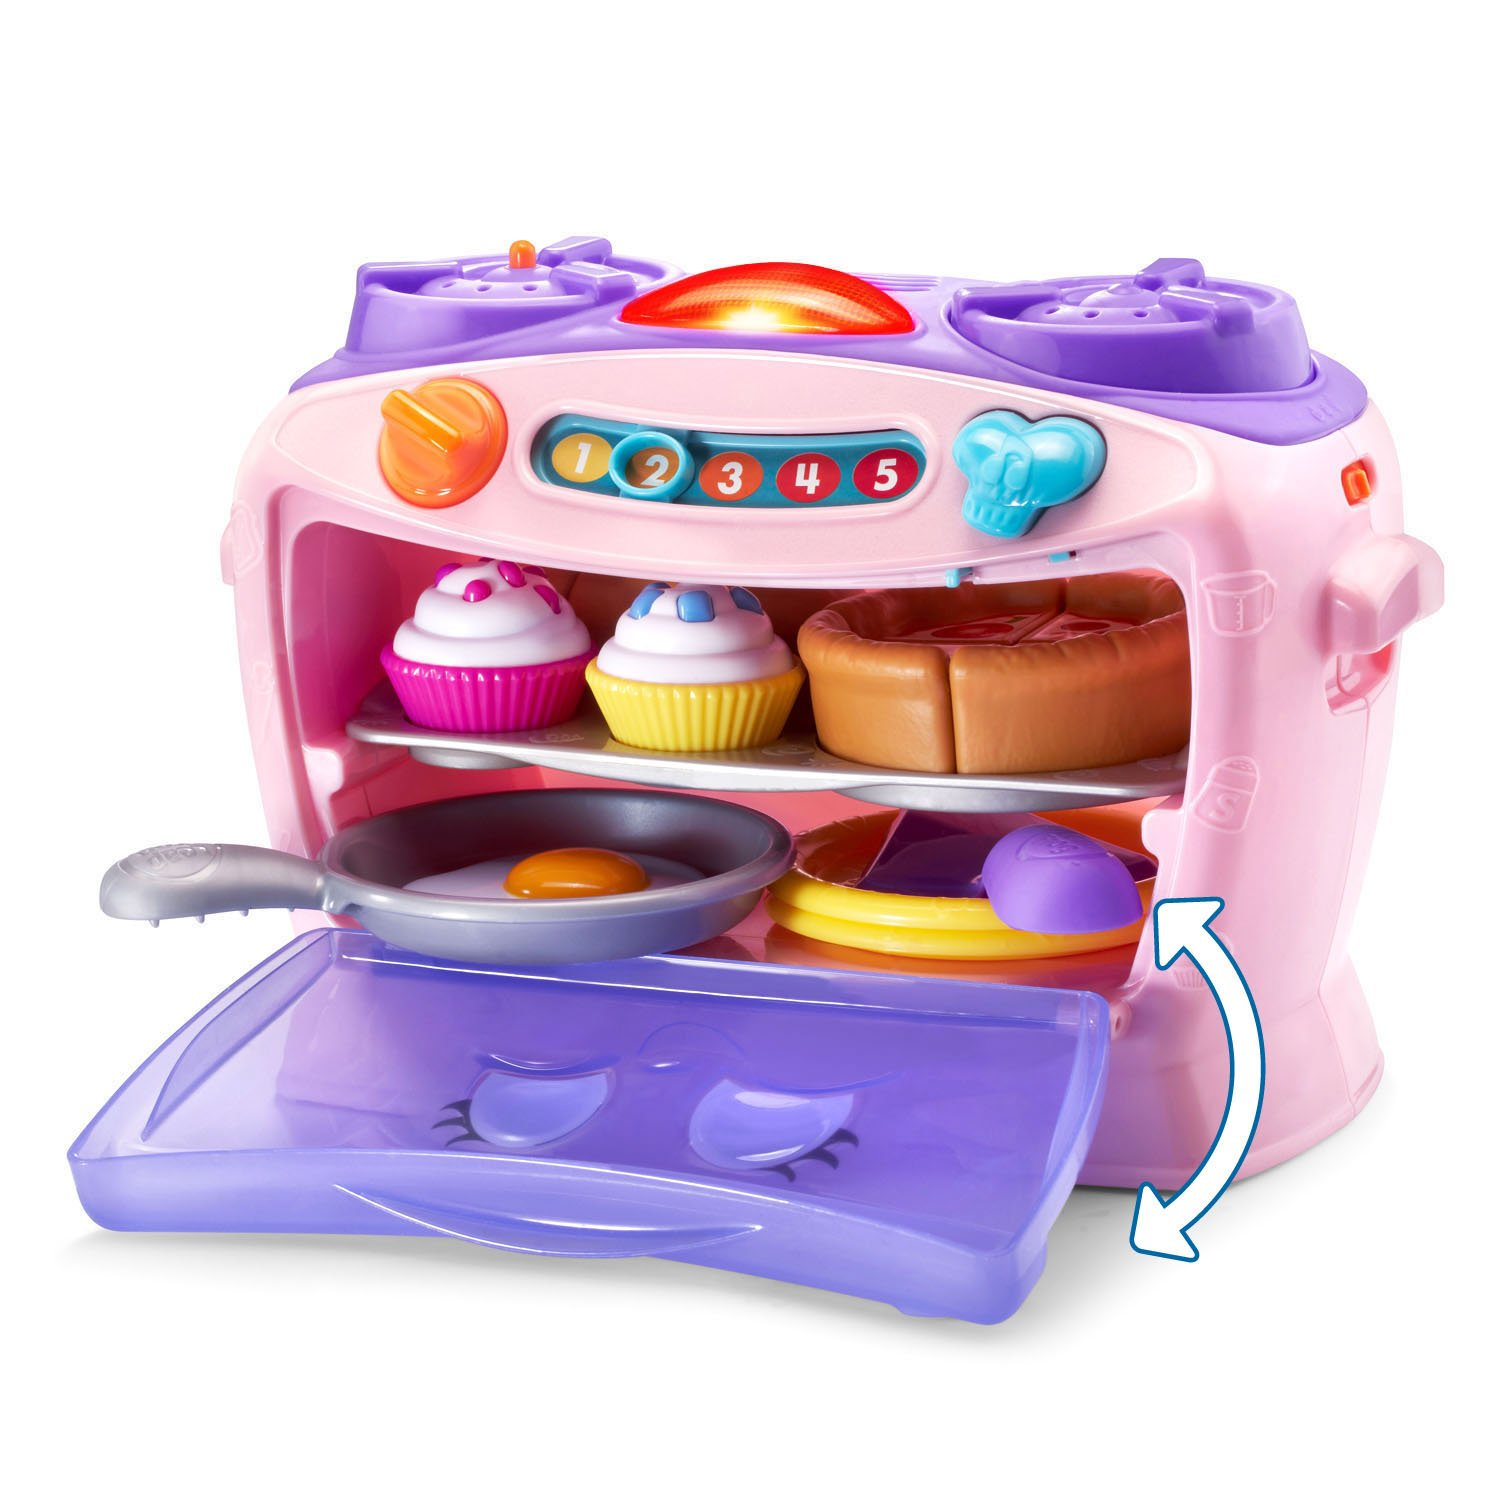 LeapFrog Number Lovin' Oven, pink (Amazon Exclusive) by LeapFrog (Image #2)